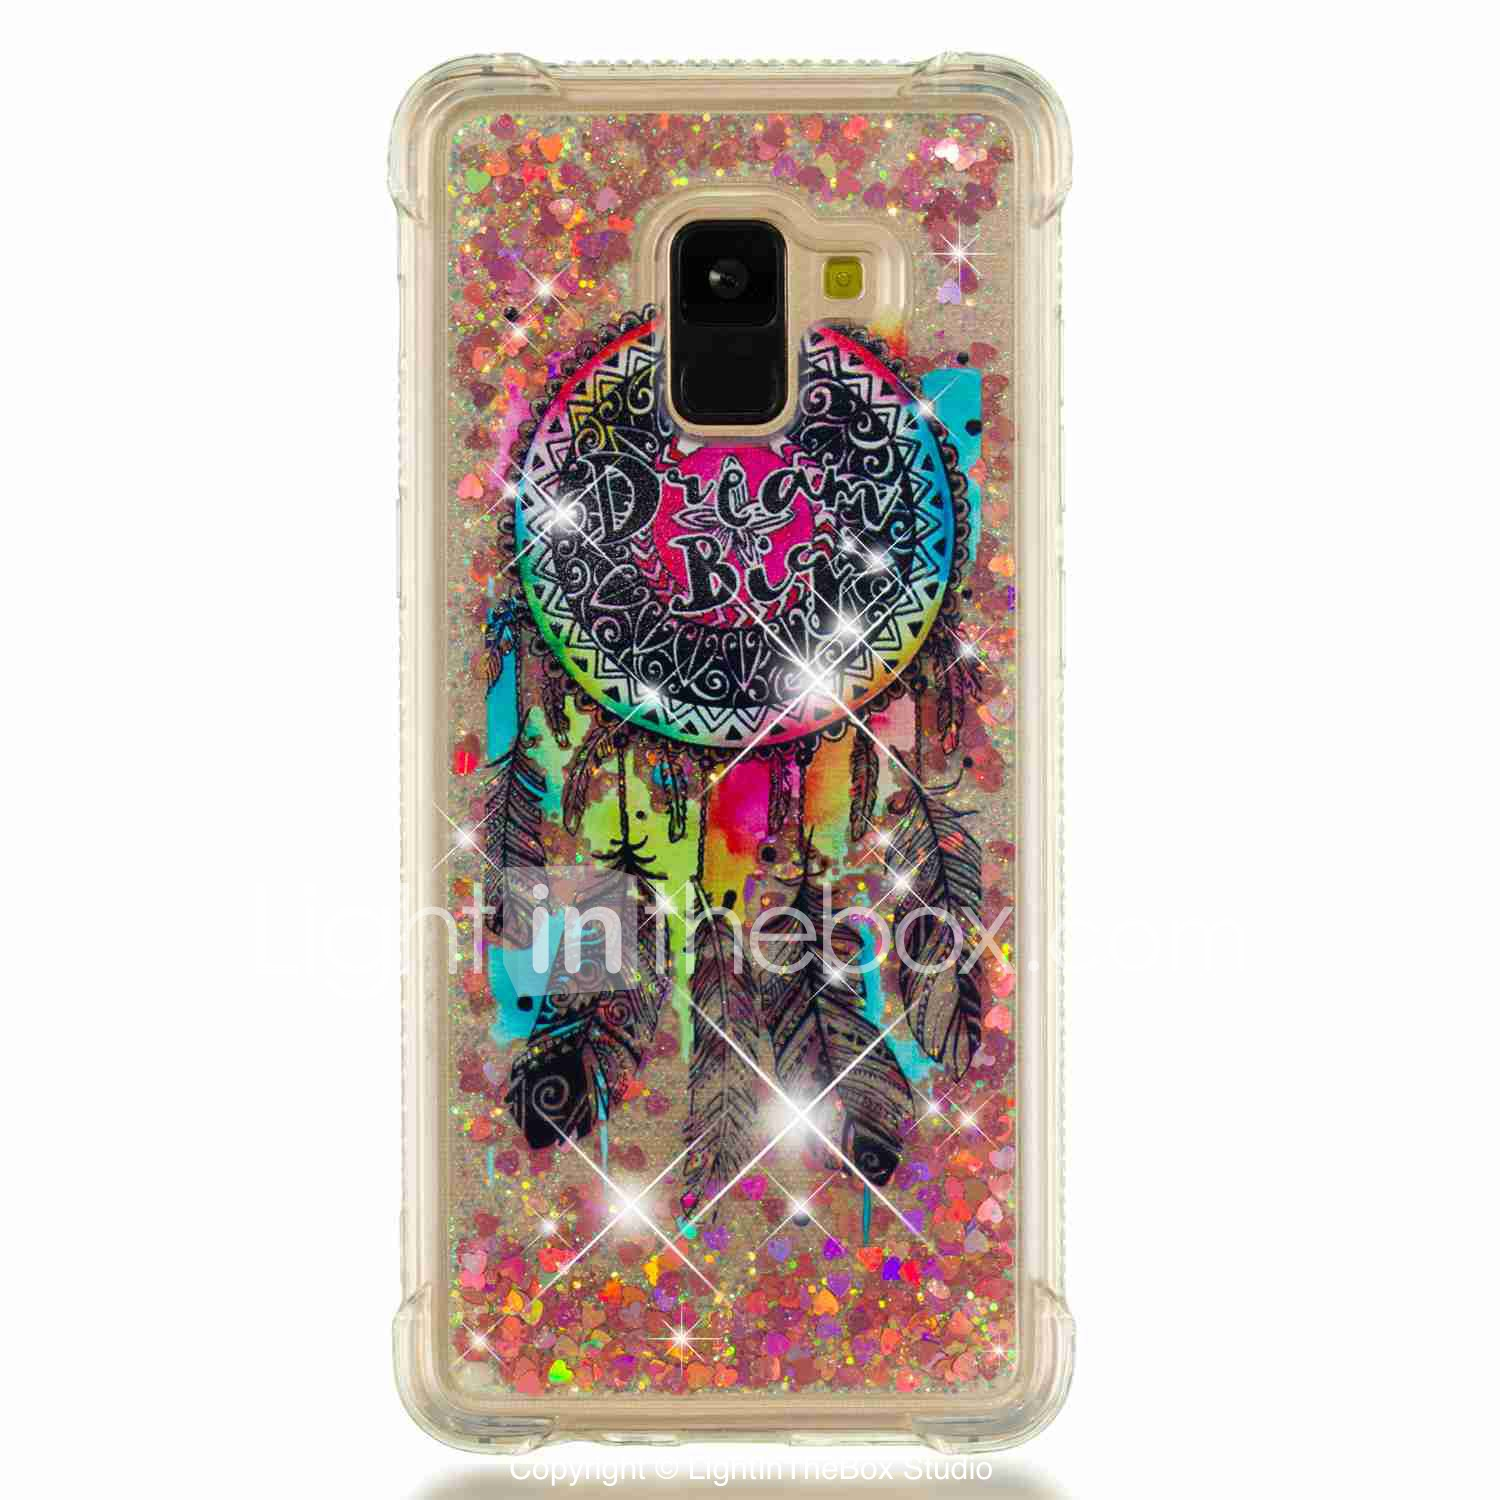 5f826669efeed3 Case For Samsung Galaxy A8 Plus 2018 / A7(2018) Shockproof / Flowing Liquid  / Transparent Back Cover Dream Catcher / Glitter Shine Soft TPU for A6 (2018)  ...